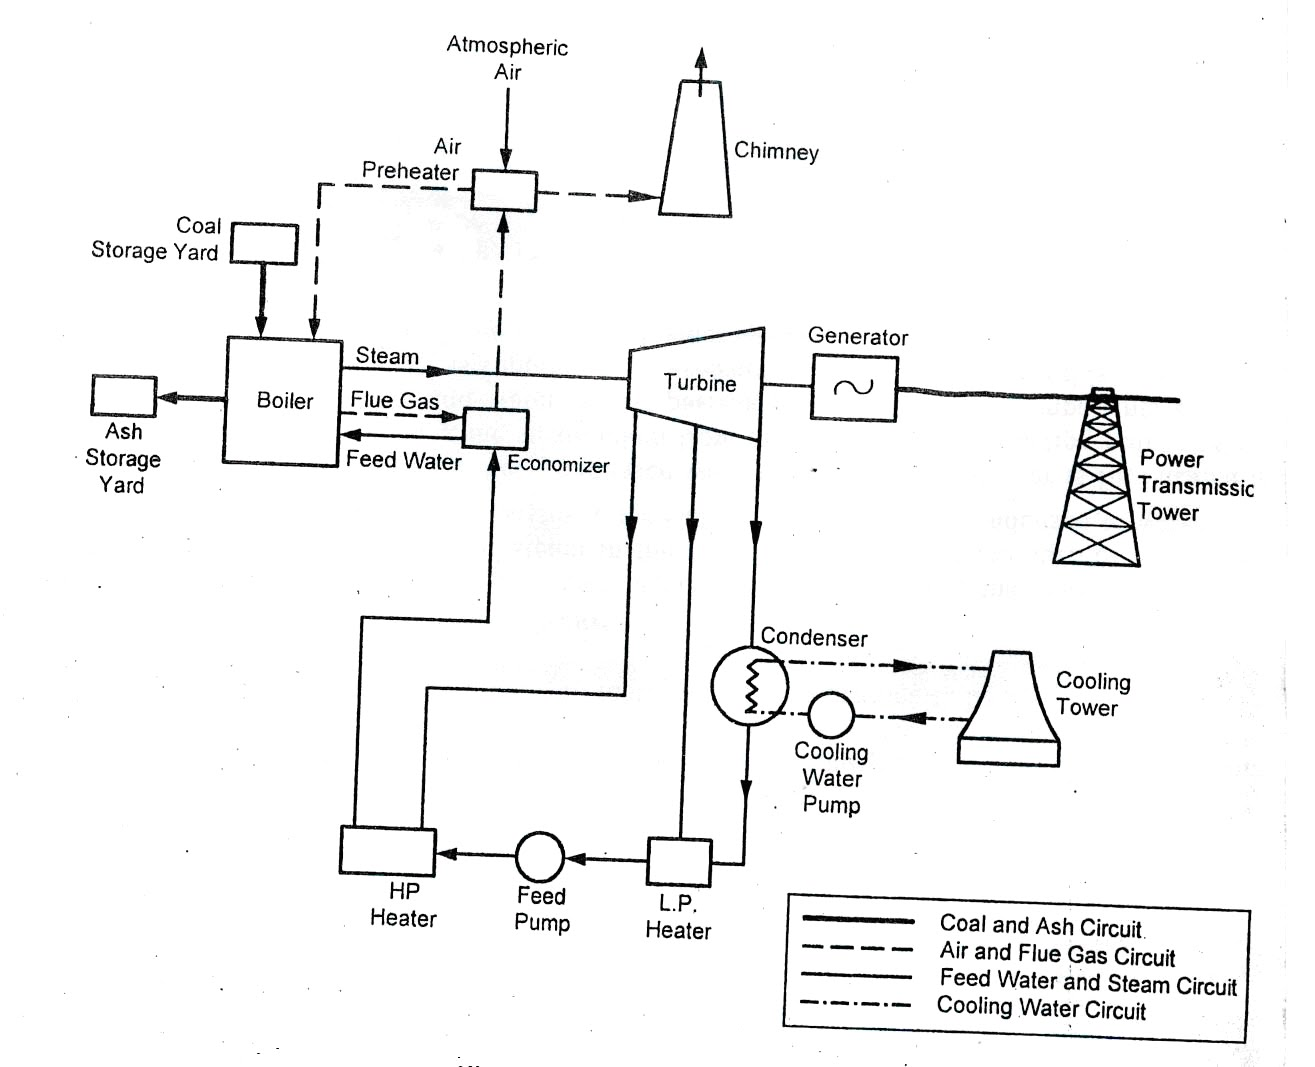 Solar Thermal Layout Of Power Plant Nuclear Design Pictures